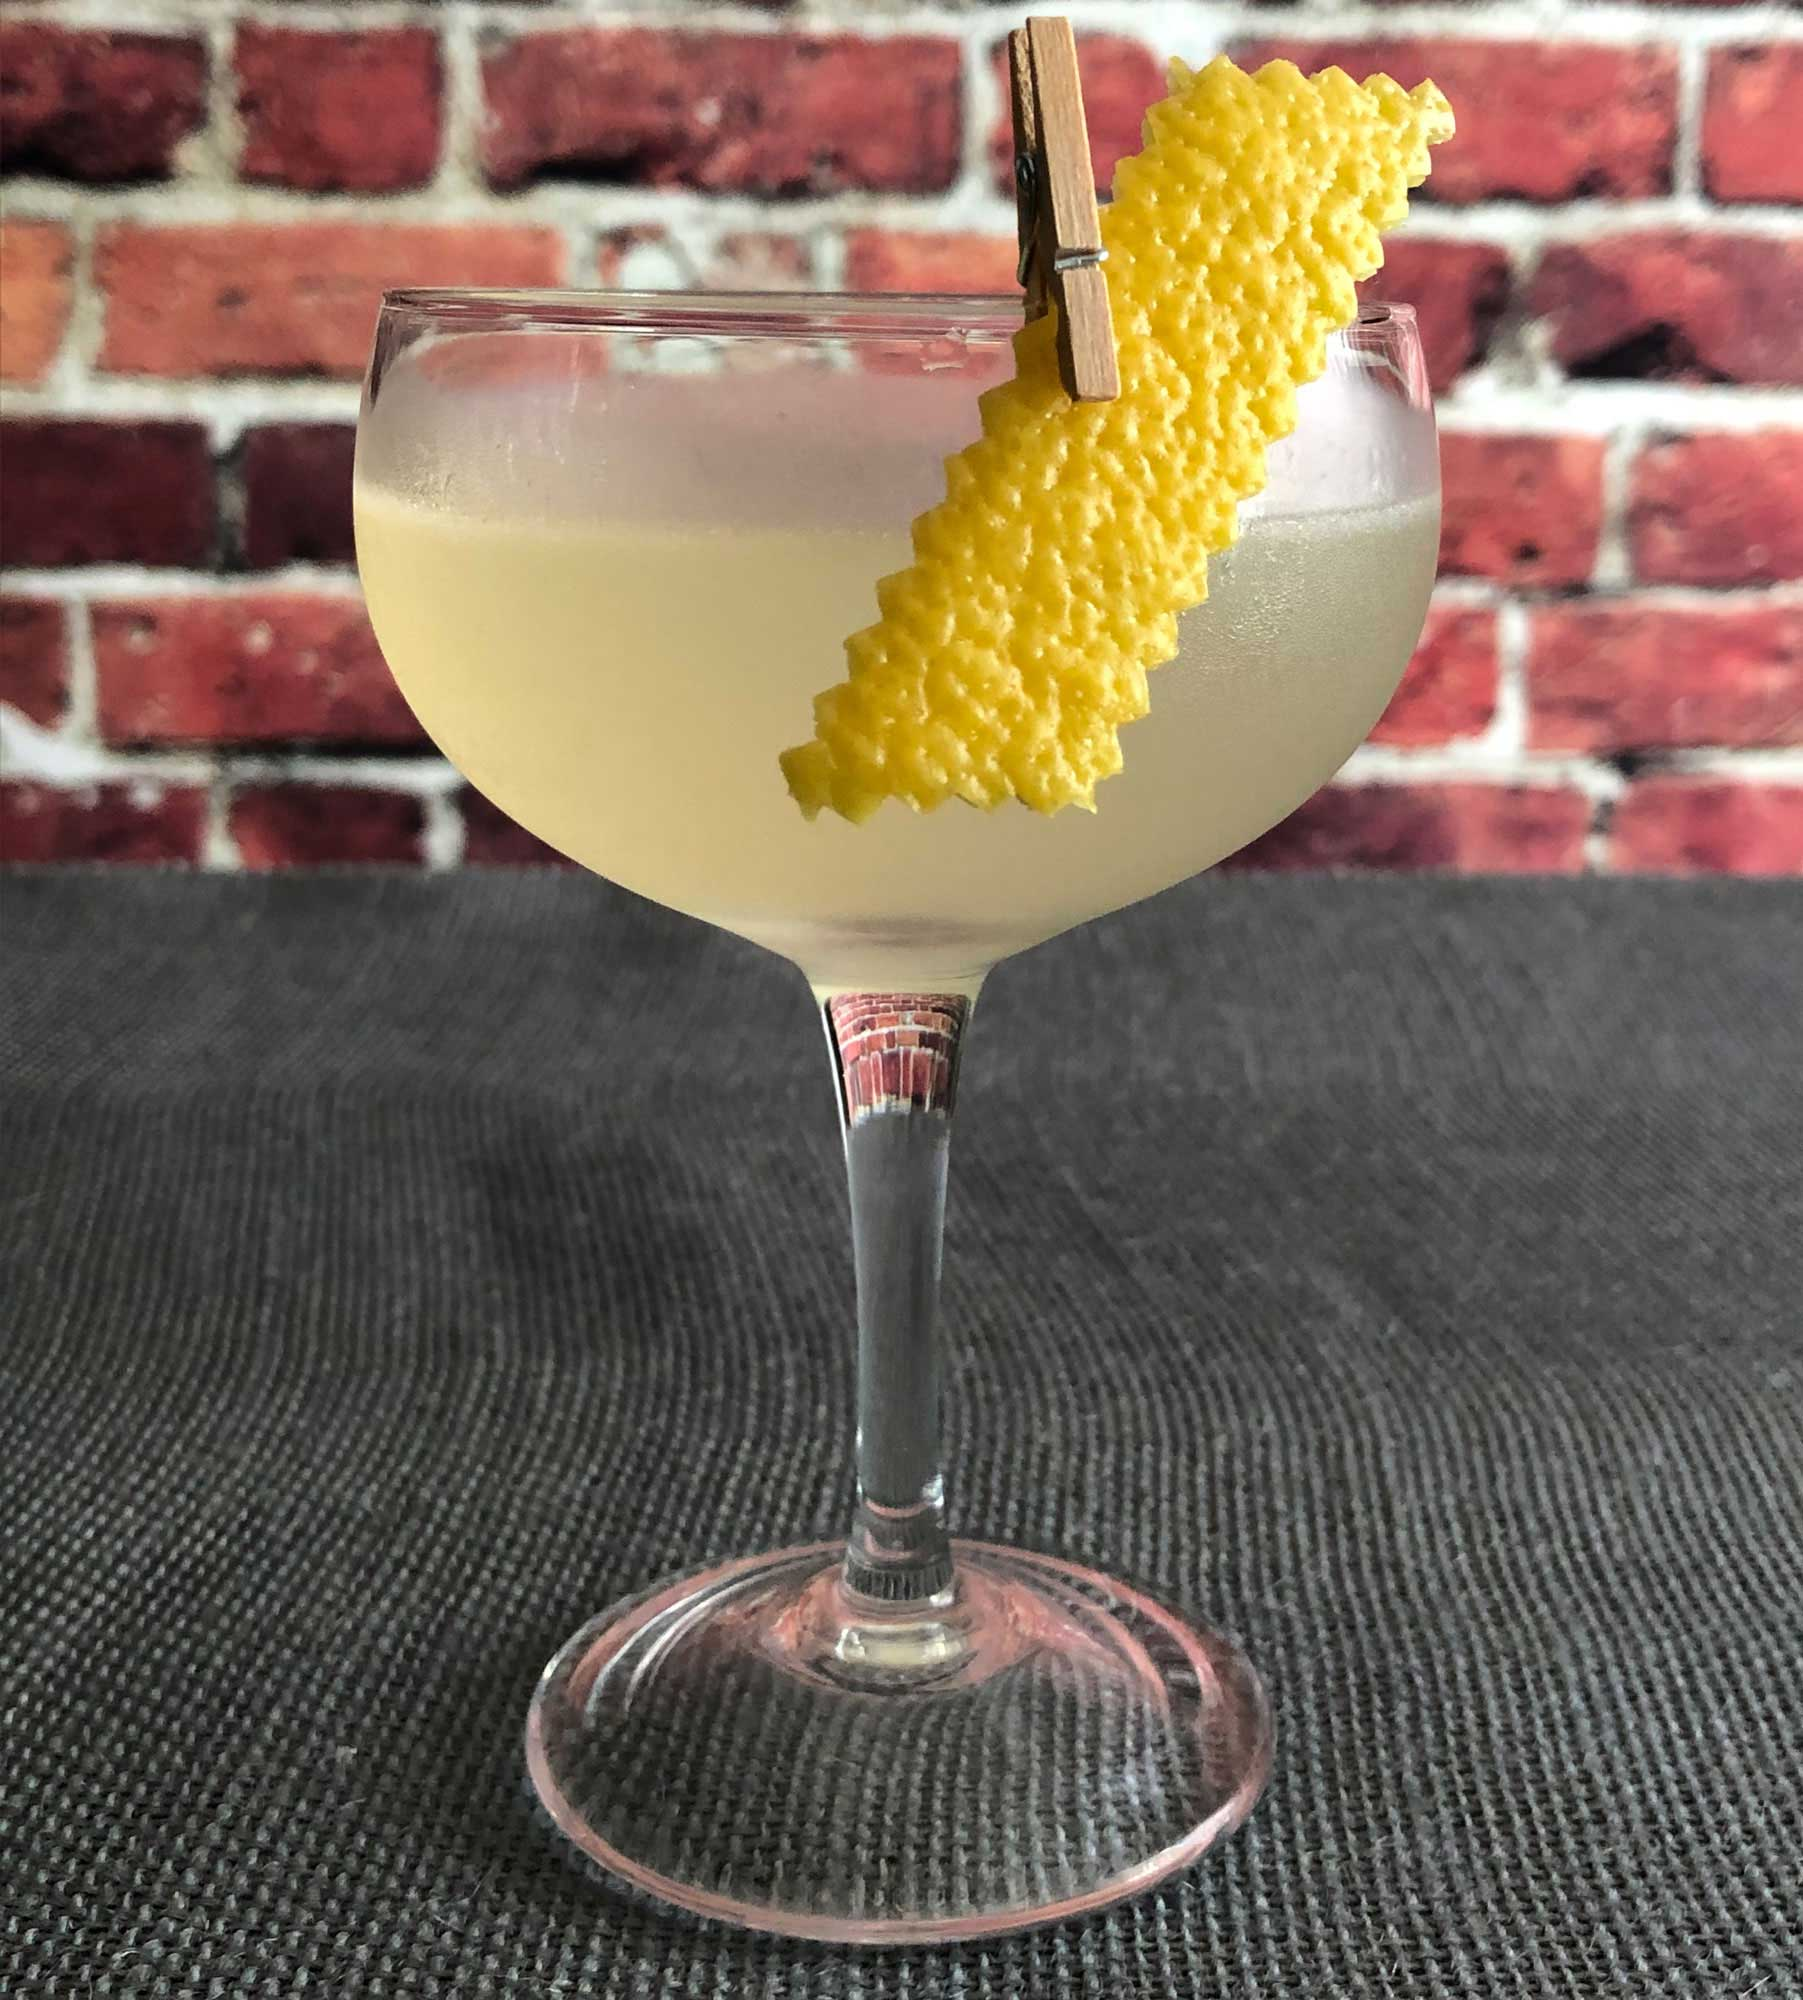 An example of the Aquitania, the mixed drink (cocktail), by David Embury, The Fine Art of Mixing Drinks, featuring Hayman's London Dry Gin, Rothman & Winter Orchard Apricot Liqueur, lime juice, and simple syrup; photo by Lee Edwards